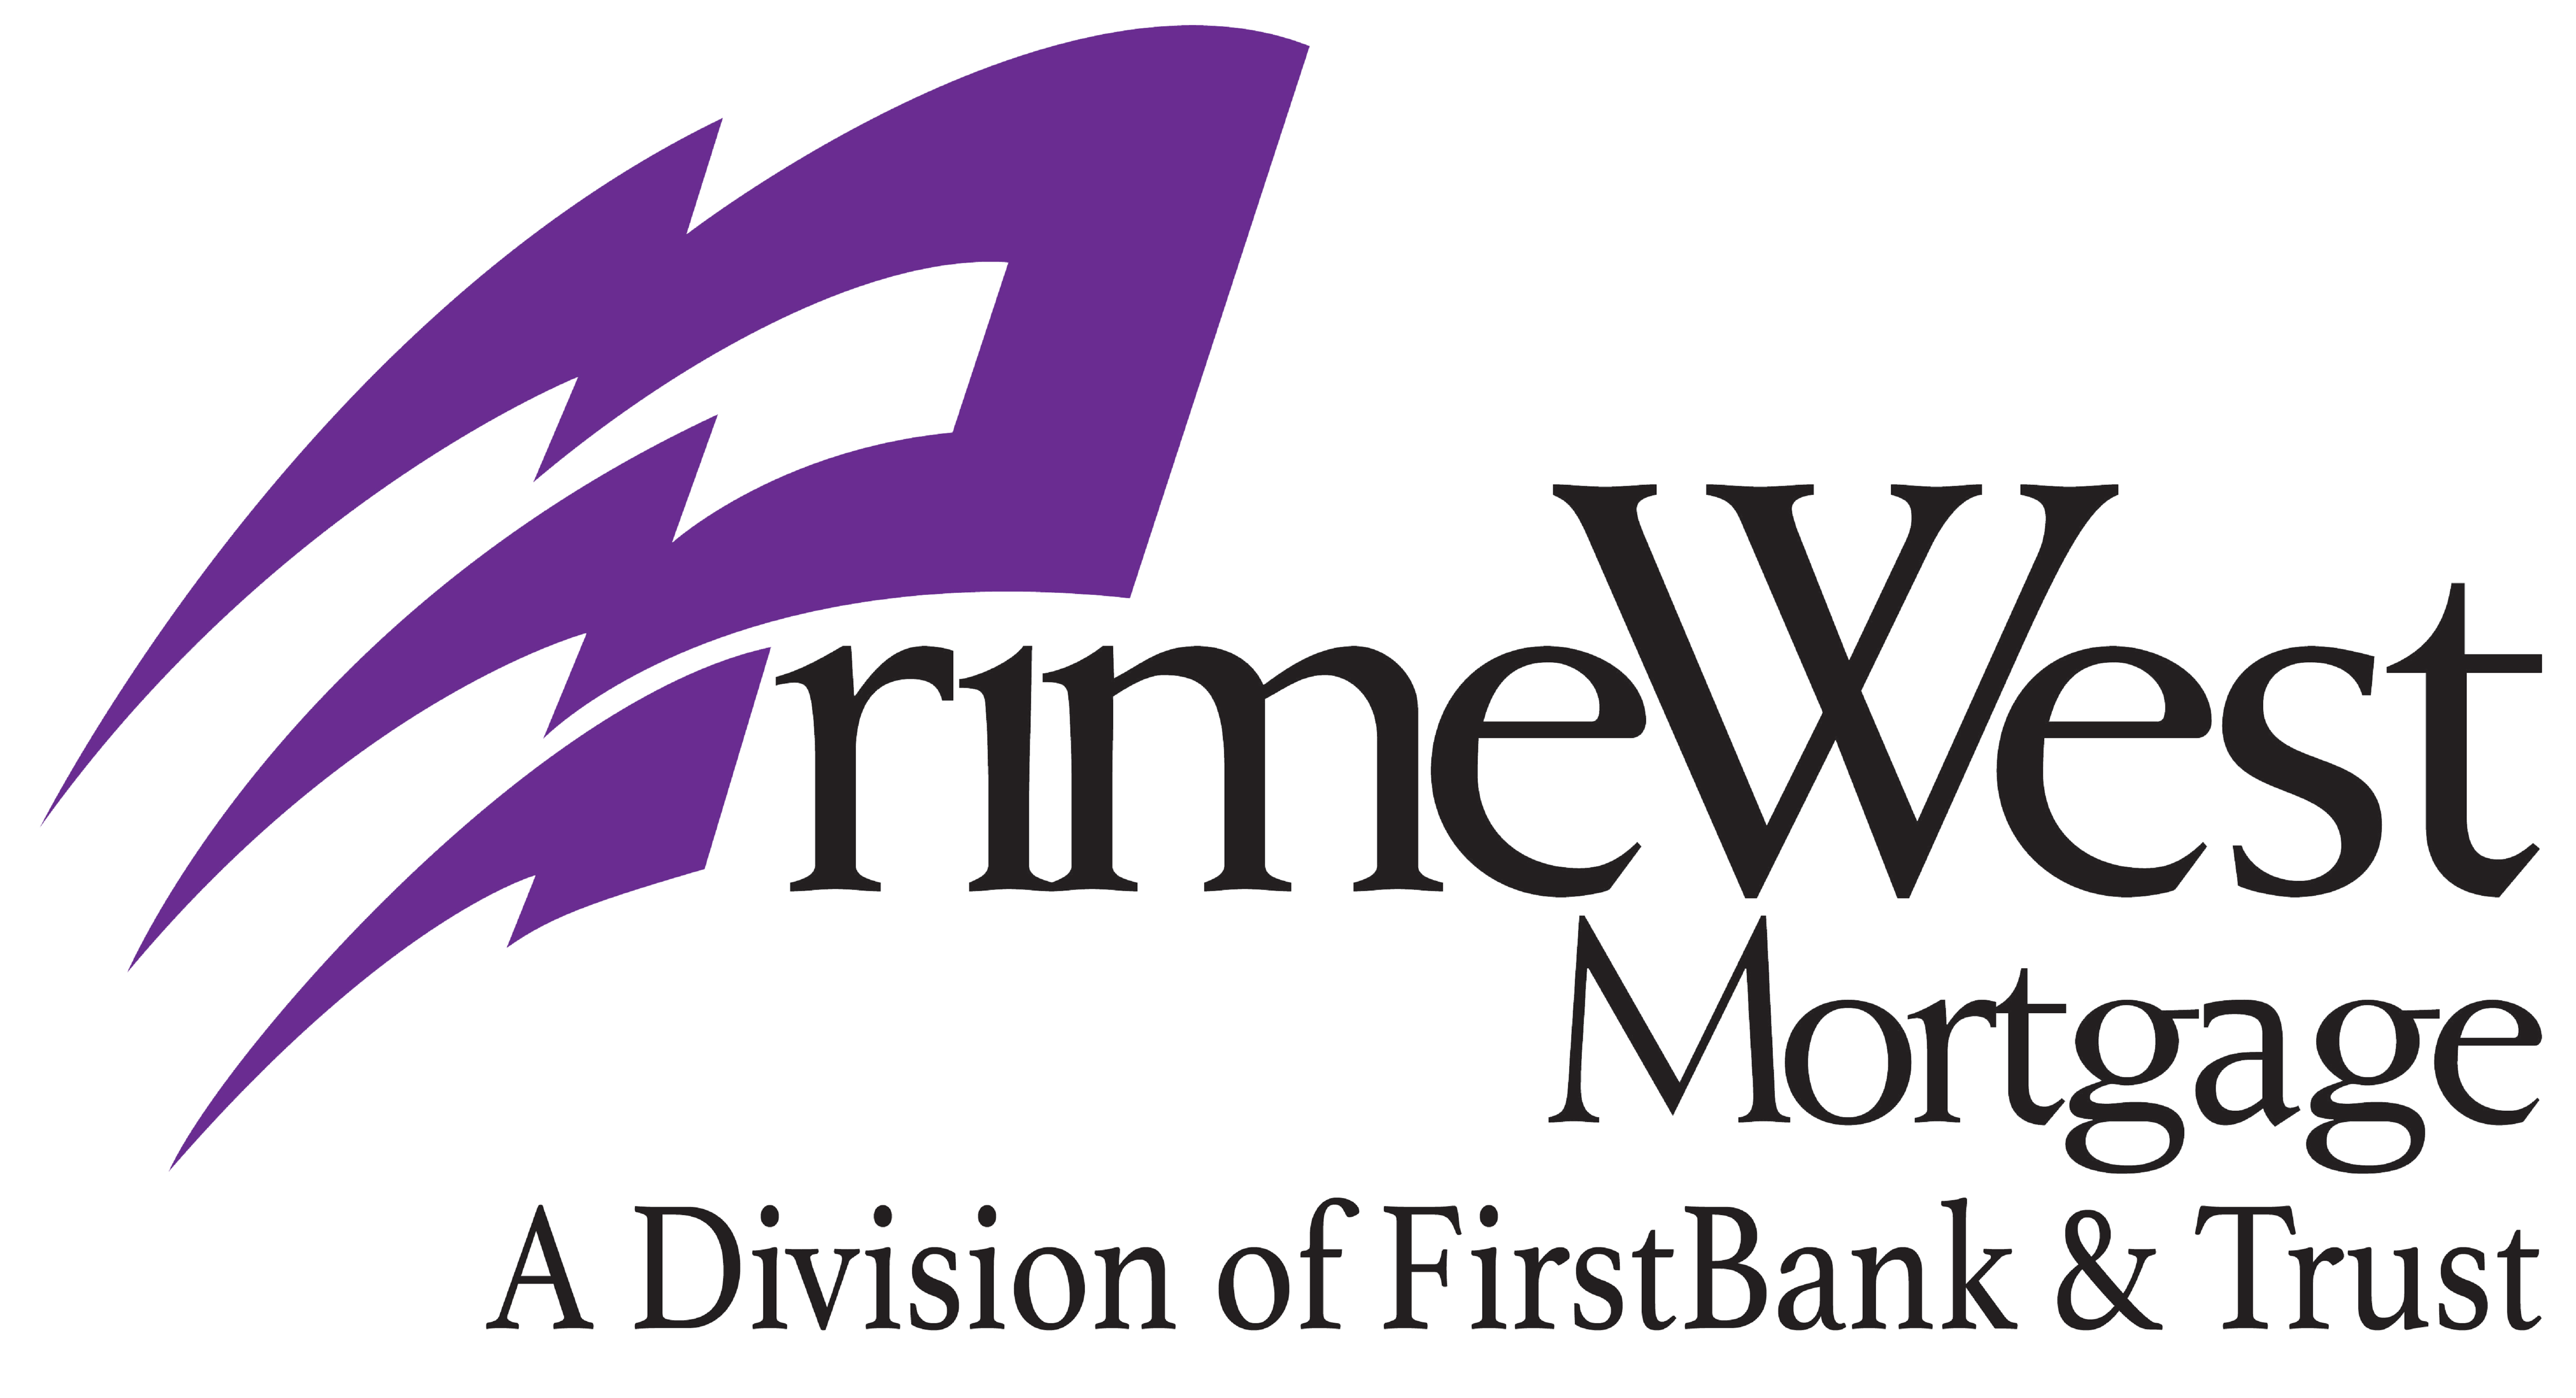 Jack Bibb, PrimeWest Mortgage